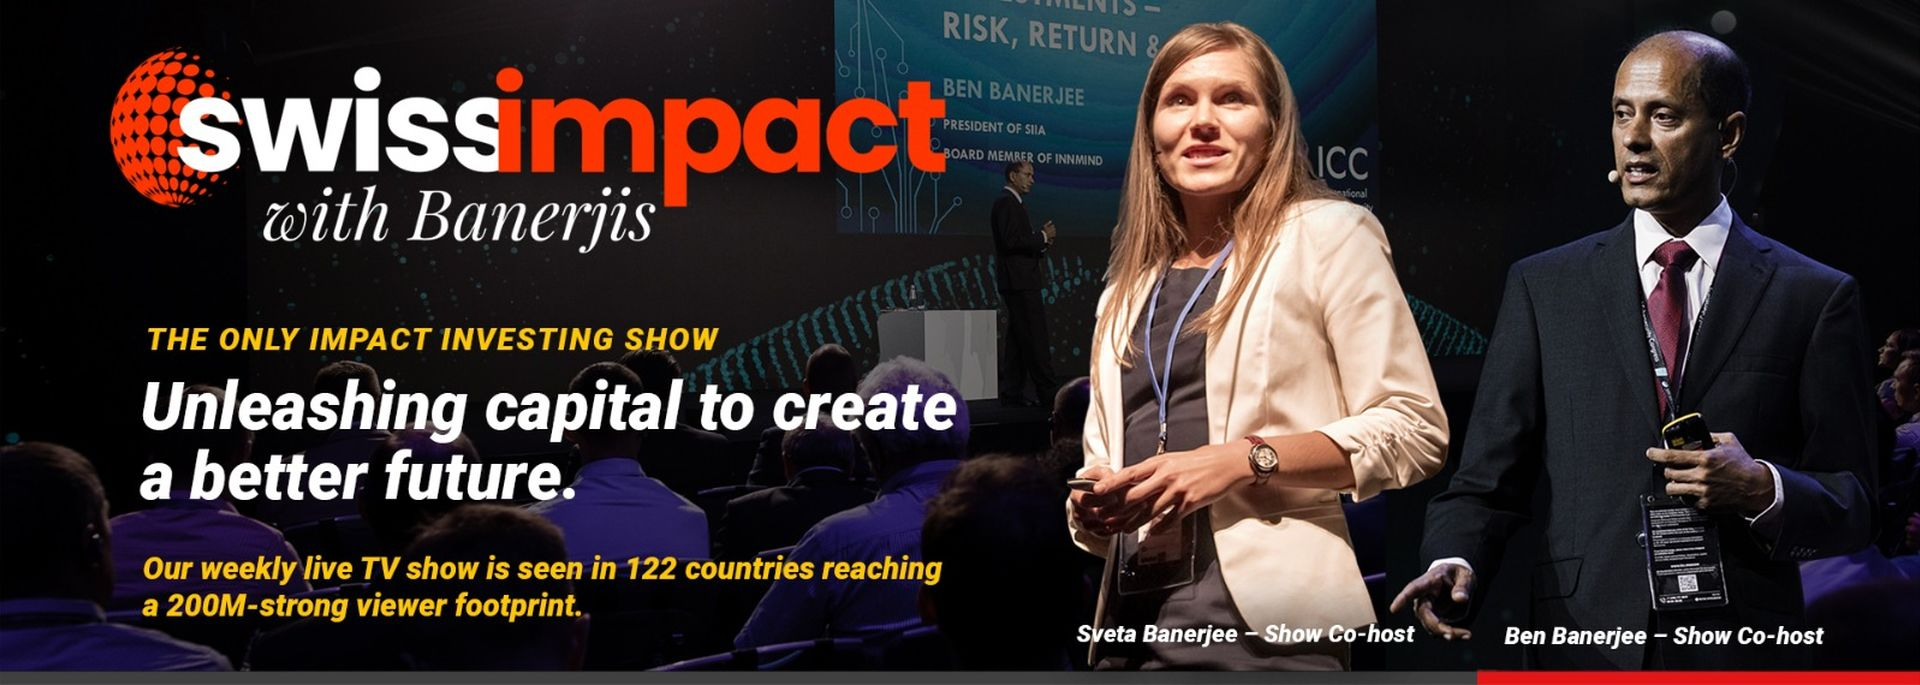 Swiss Impact with Banerjis channel